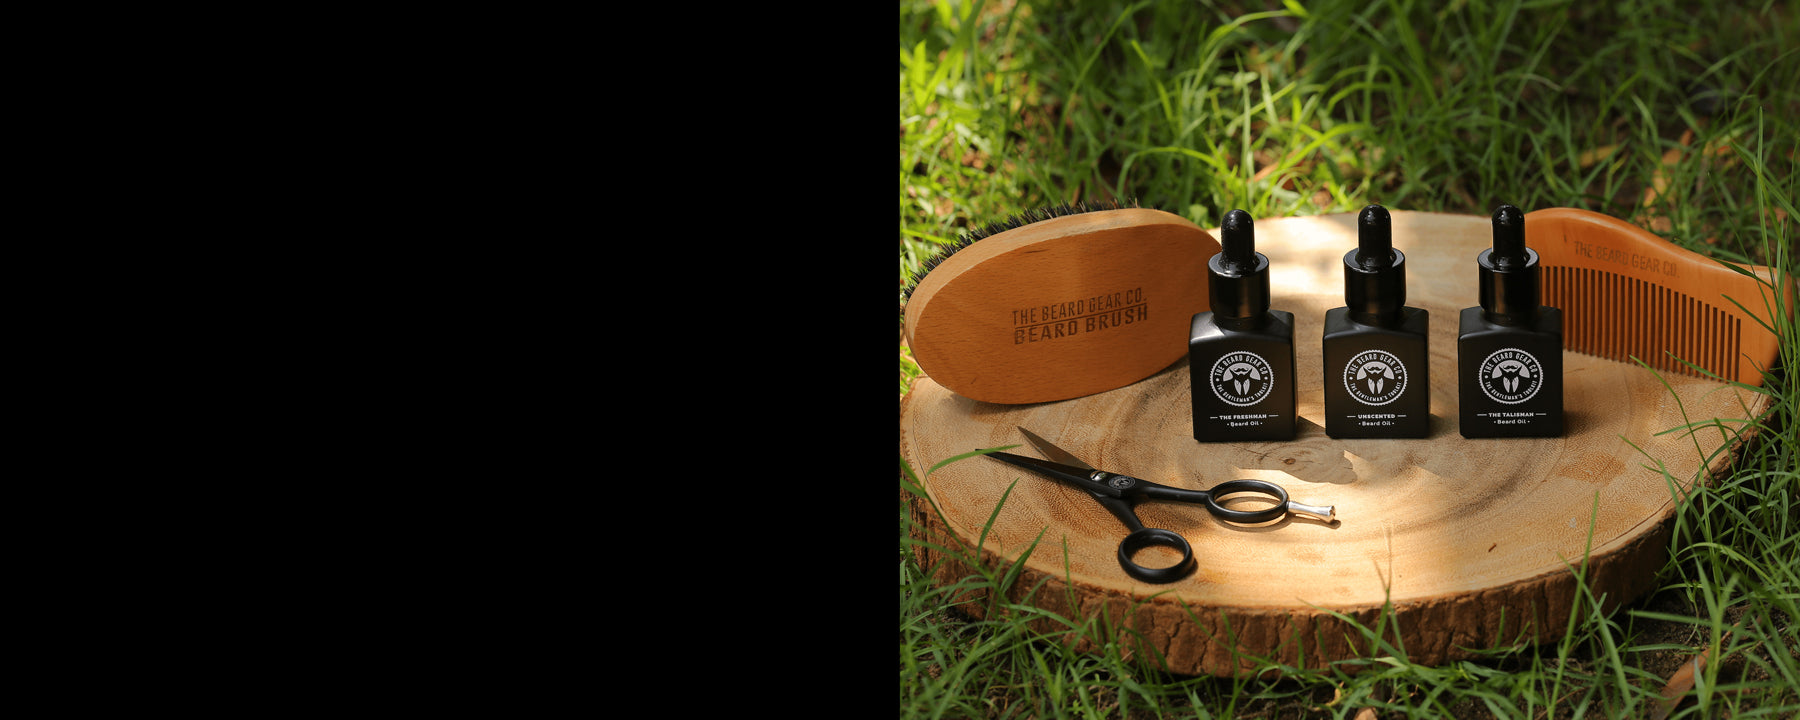 Men's Beard Oils-Beard Grooming Kits in Dubai, UAE - The Beard Gear Co.